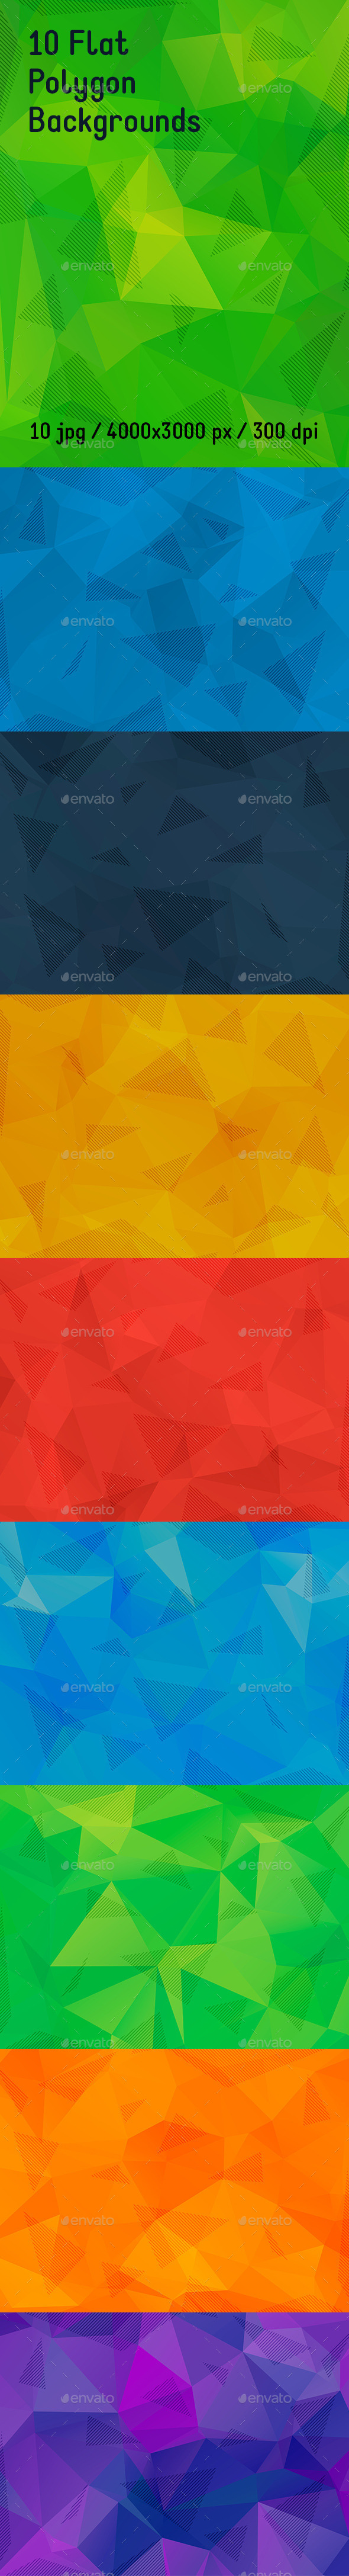 10 Flat Polygon Backgrounds - Abstract Backgrounds